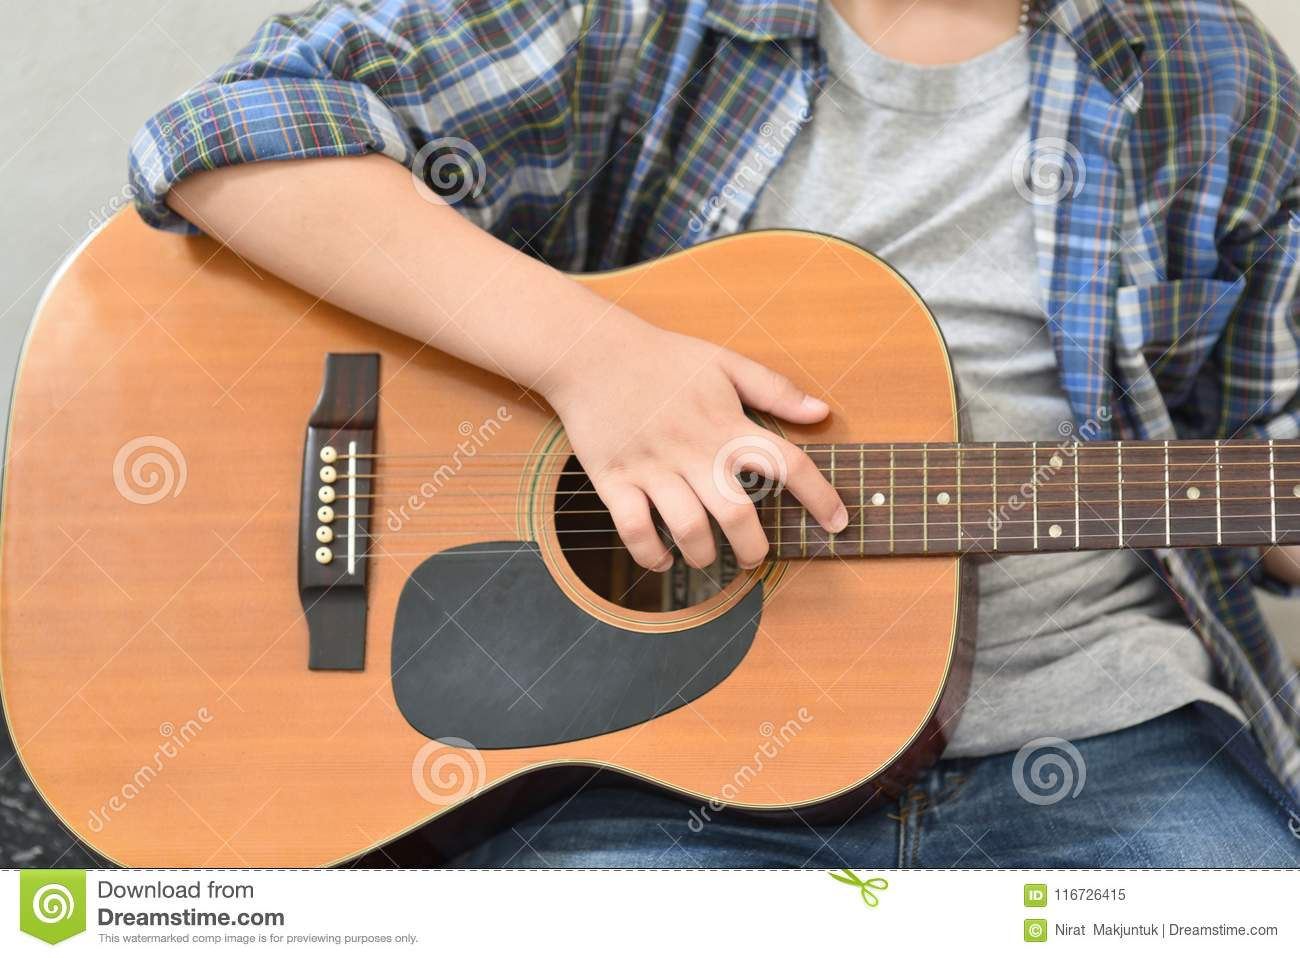 Guitar Chords Stock Image Image Of Holding Couch 116726415